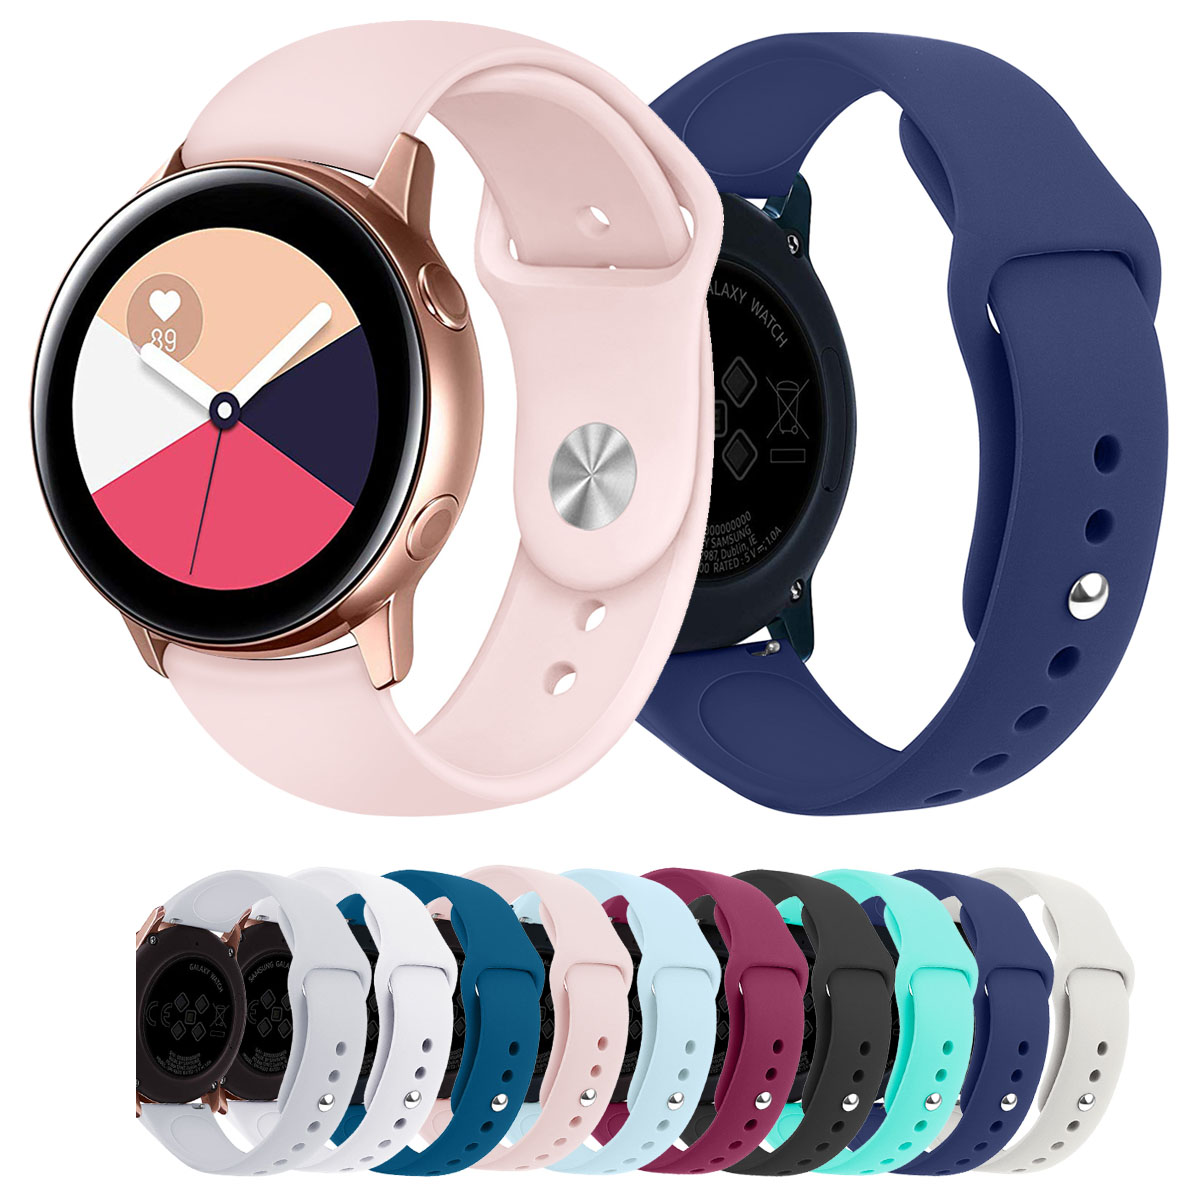 20mm Silicone Sport Strap Band For Samsung Galaxy Watch Active Watch Strap For Galaxy Watch 42mm Band Gear S2 Classic Bracelet